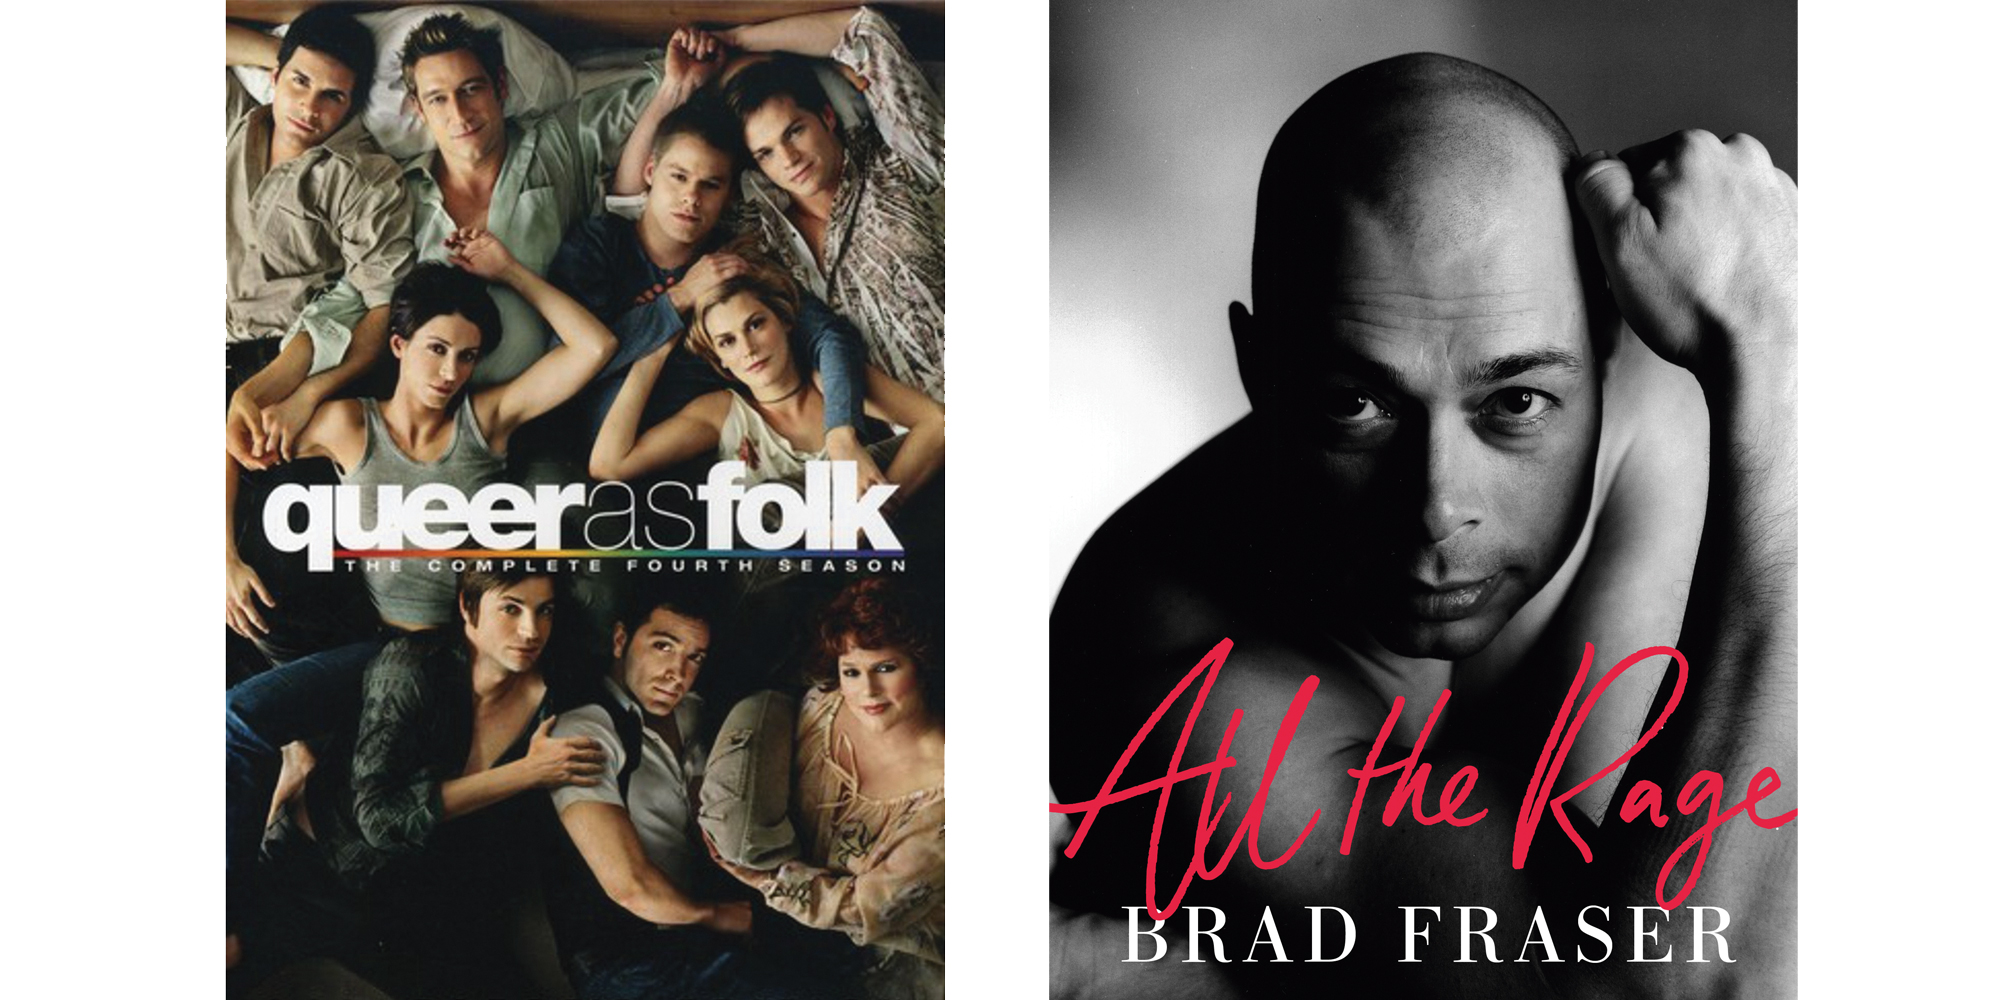 A photo of the cast and title of the television show Queer As Folk. The cover of Brad Fraser's All The Rage.